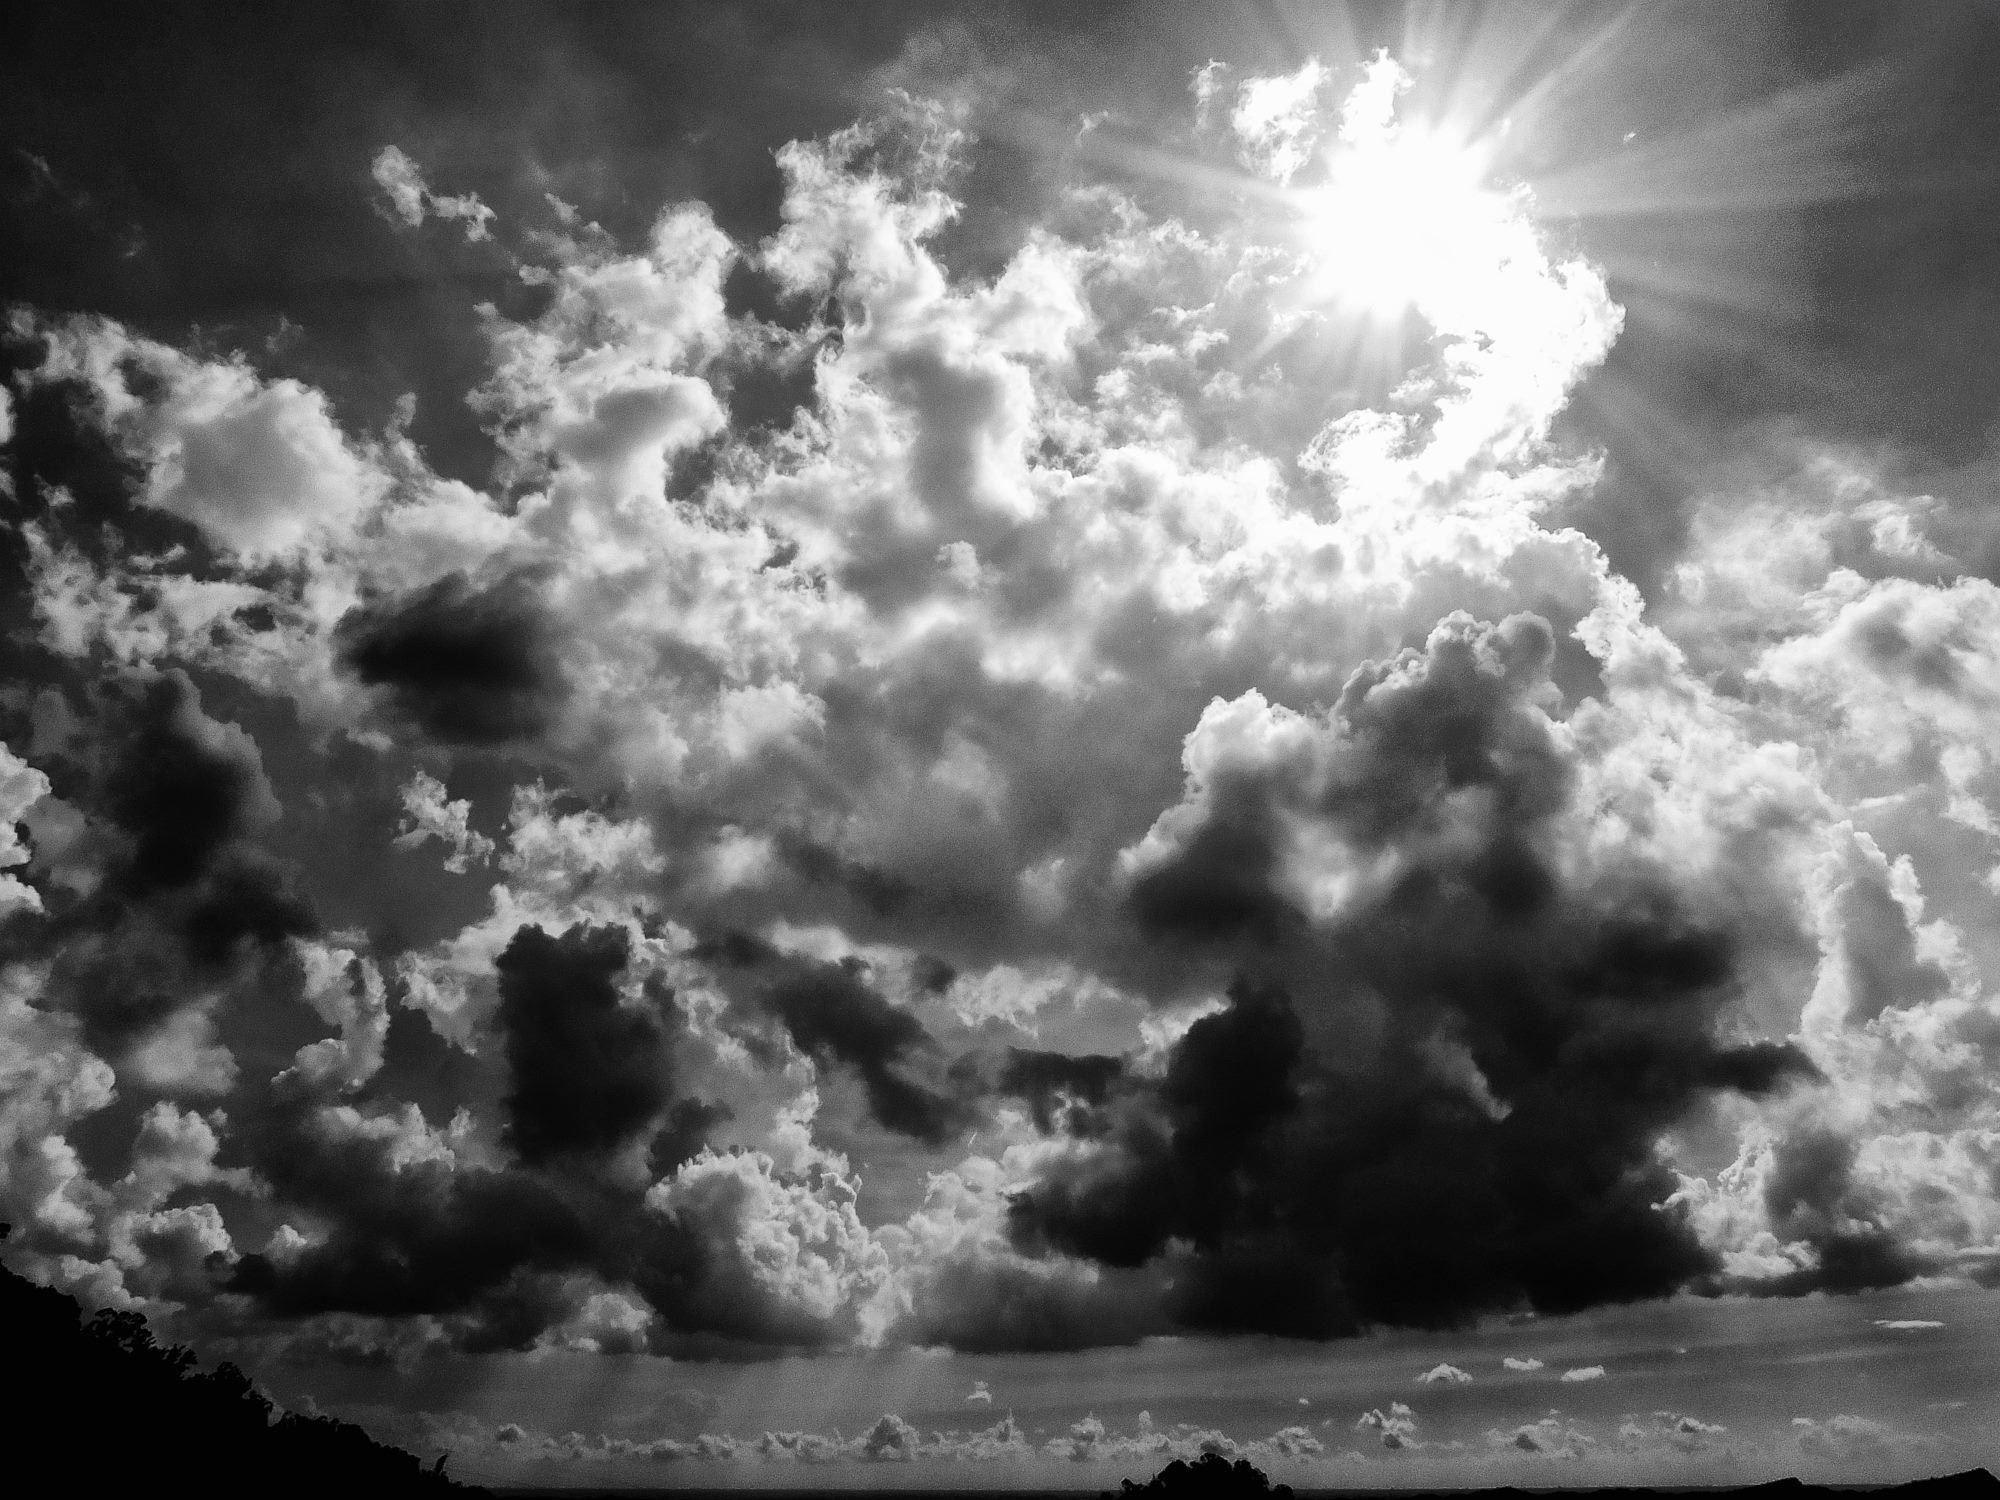 Photograph The most burning and daylight is still hot under the black and white by EastEvil com on 500px